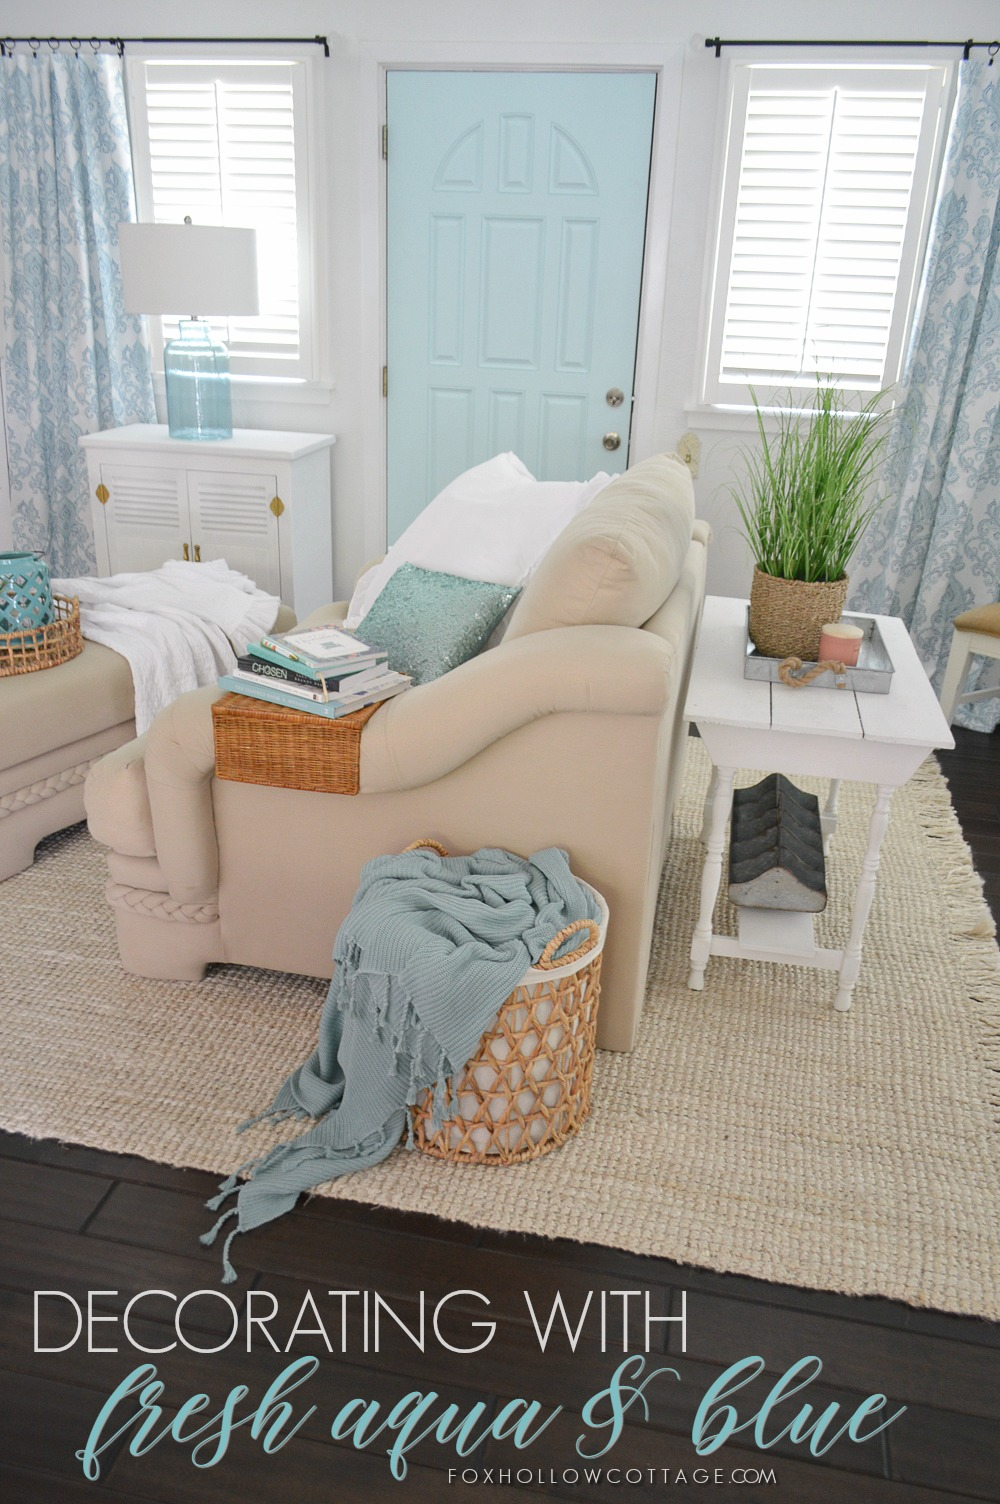 I'm bringing aqua back to my home, for an airy coastal cottage feel. Aqua Blue Cottage Home Decorating Ideas at Fox Hollow Cottage blog - www.foxhollowcottage.com